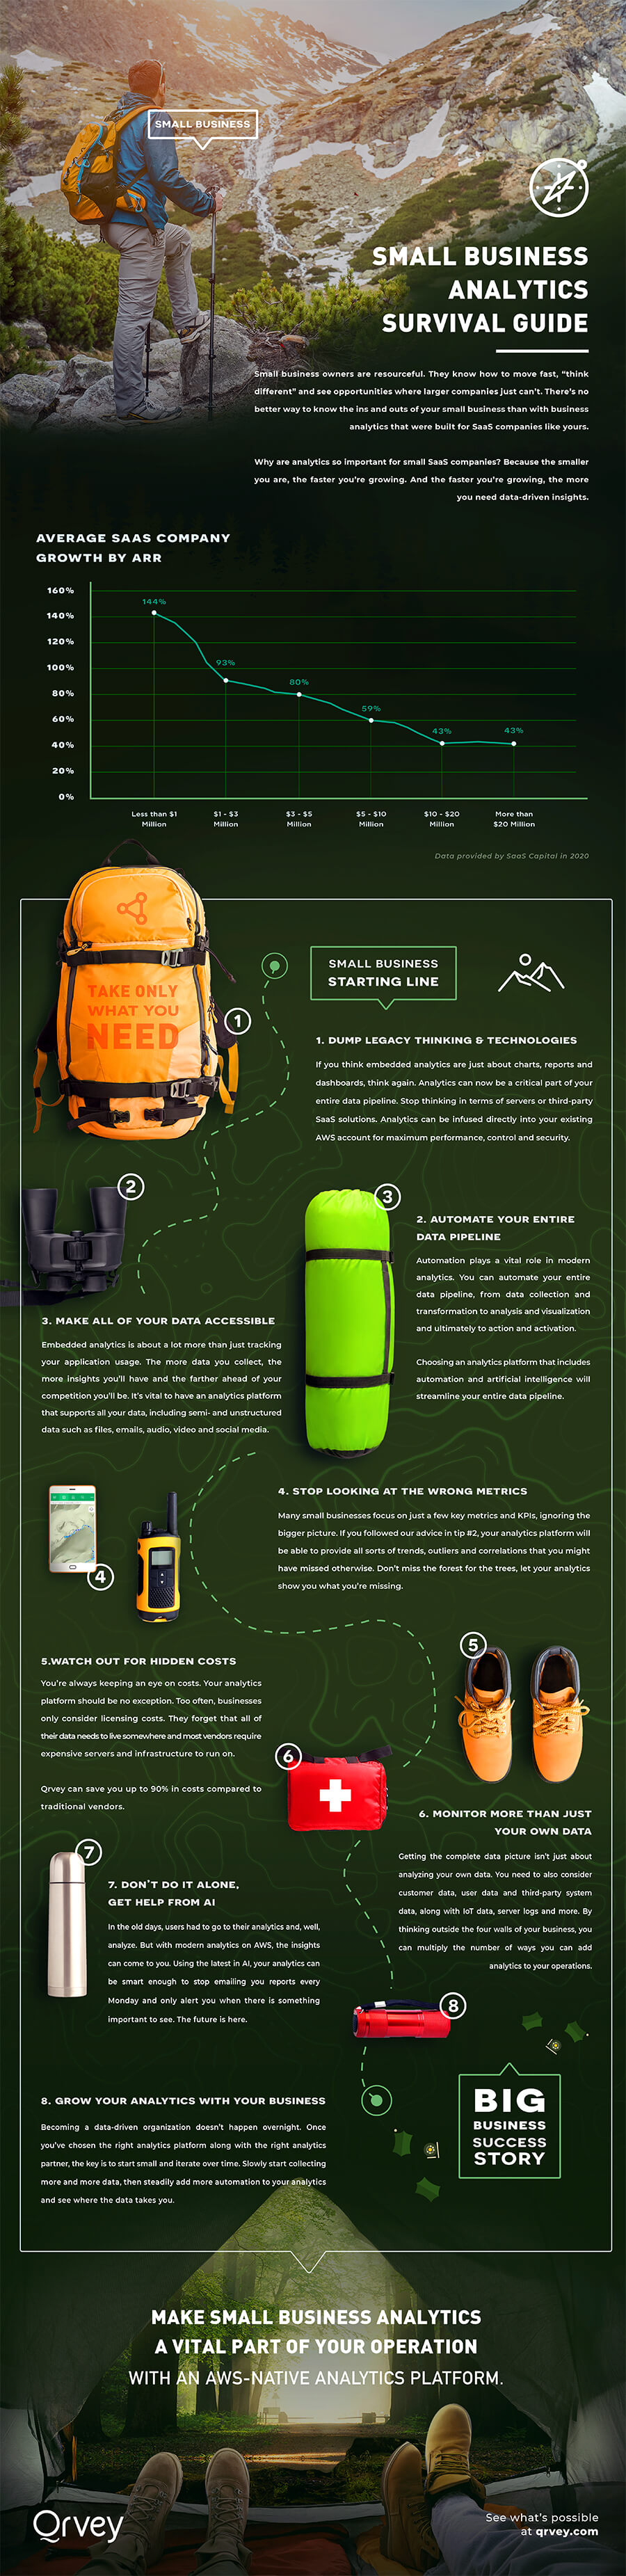 Infographic: Small Business Analytics Survival Guide